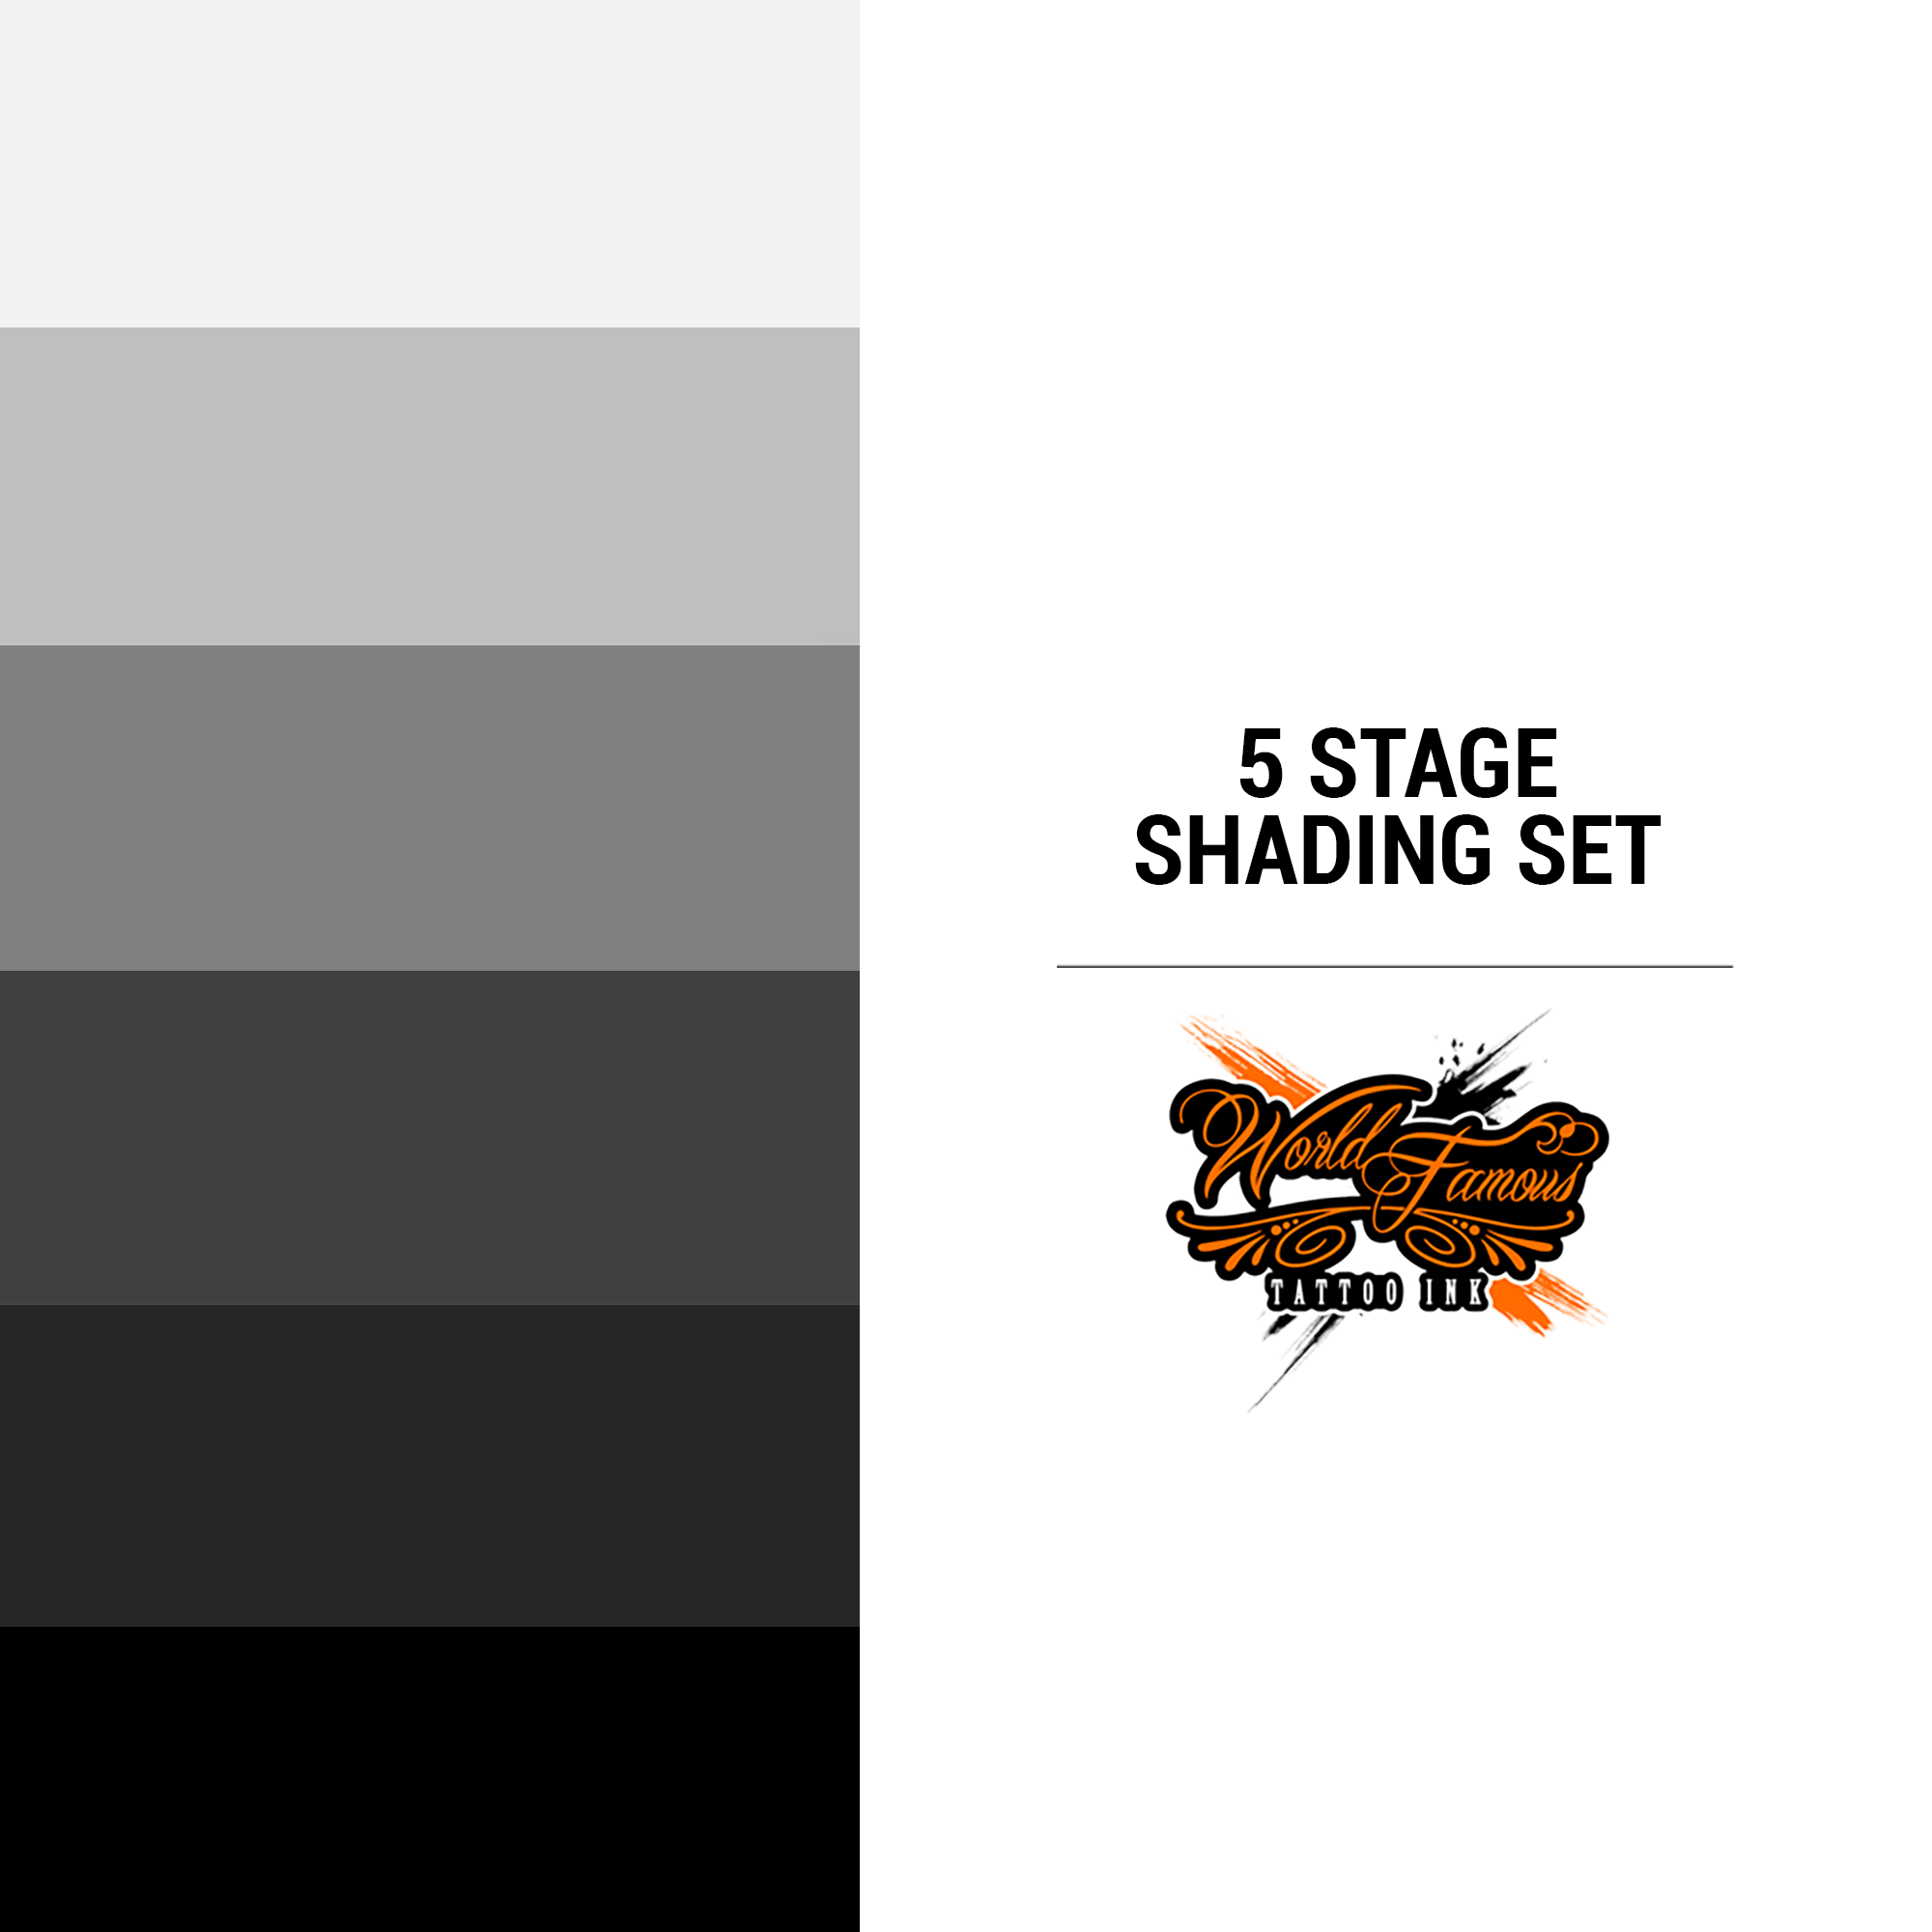 WF 5 Stage Shading Set